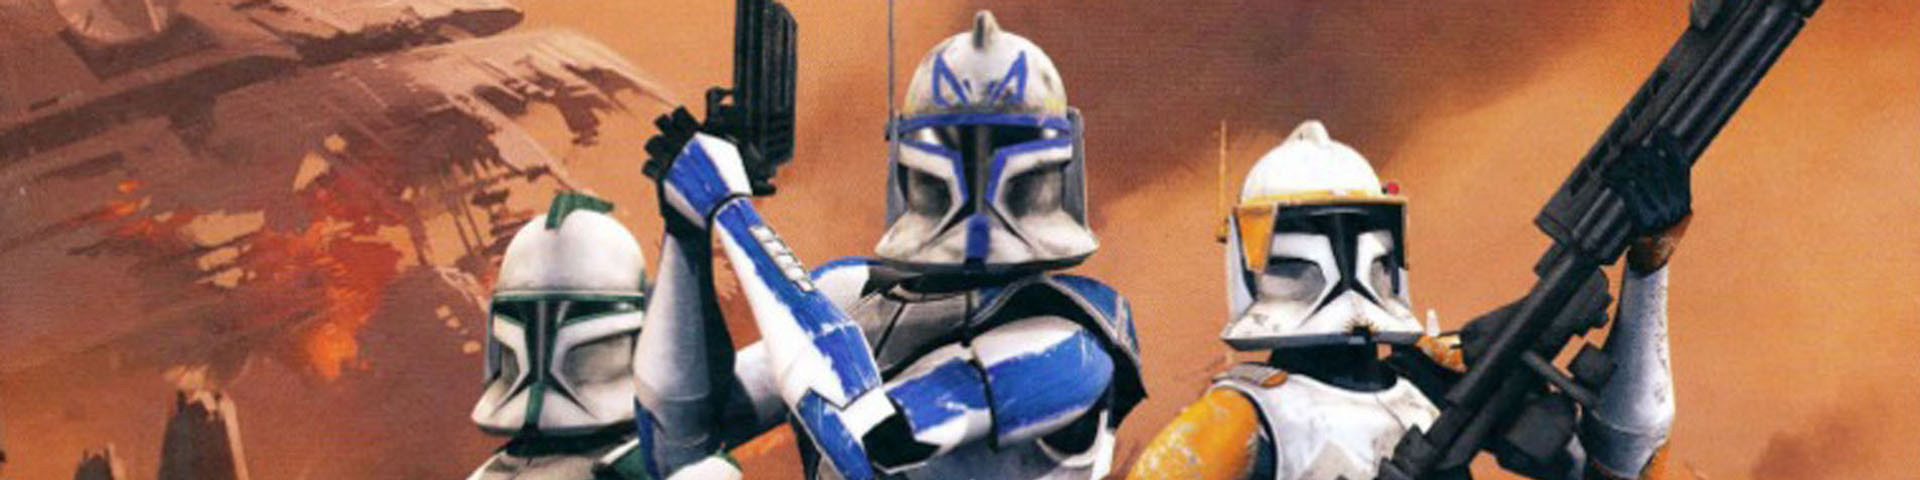 Three white-armored clone troopers stand against an orange background.